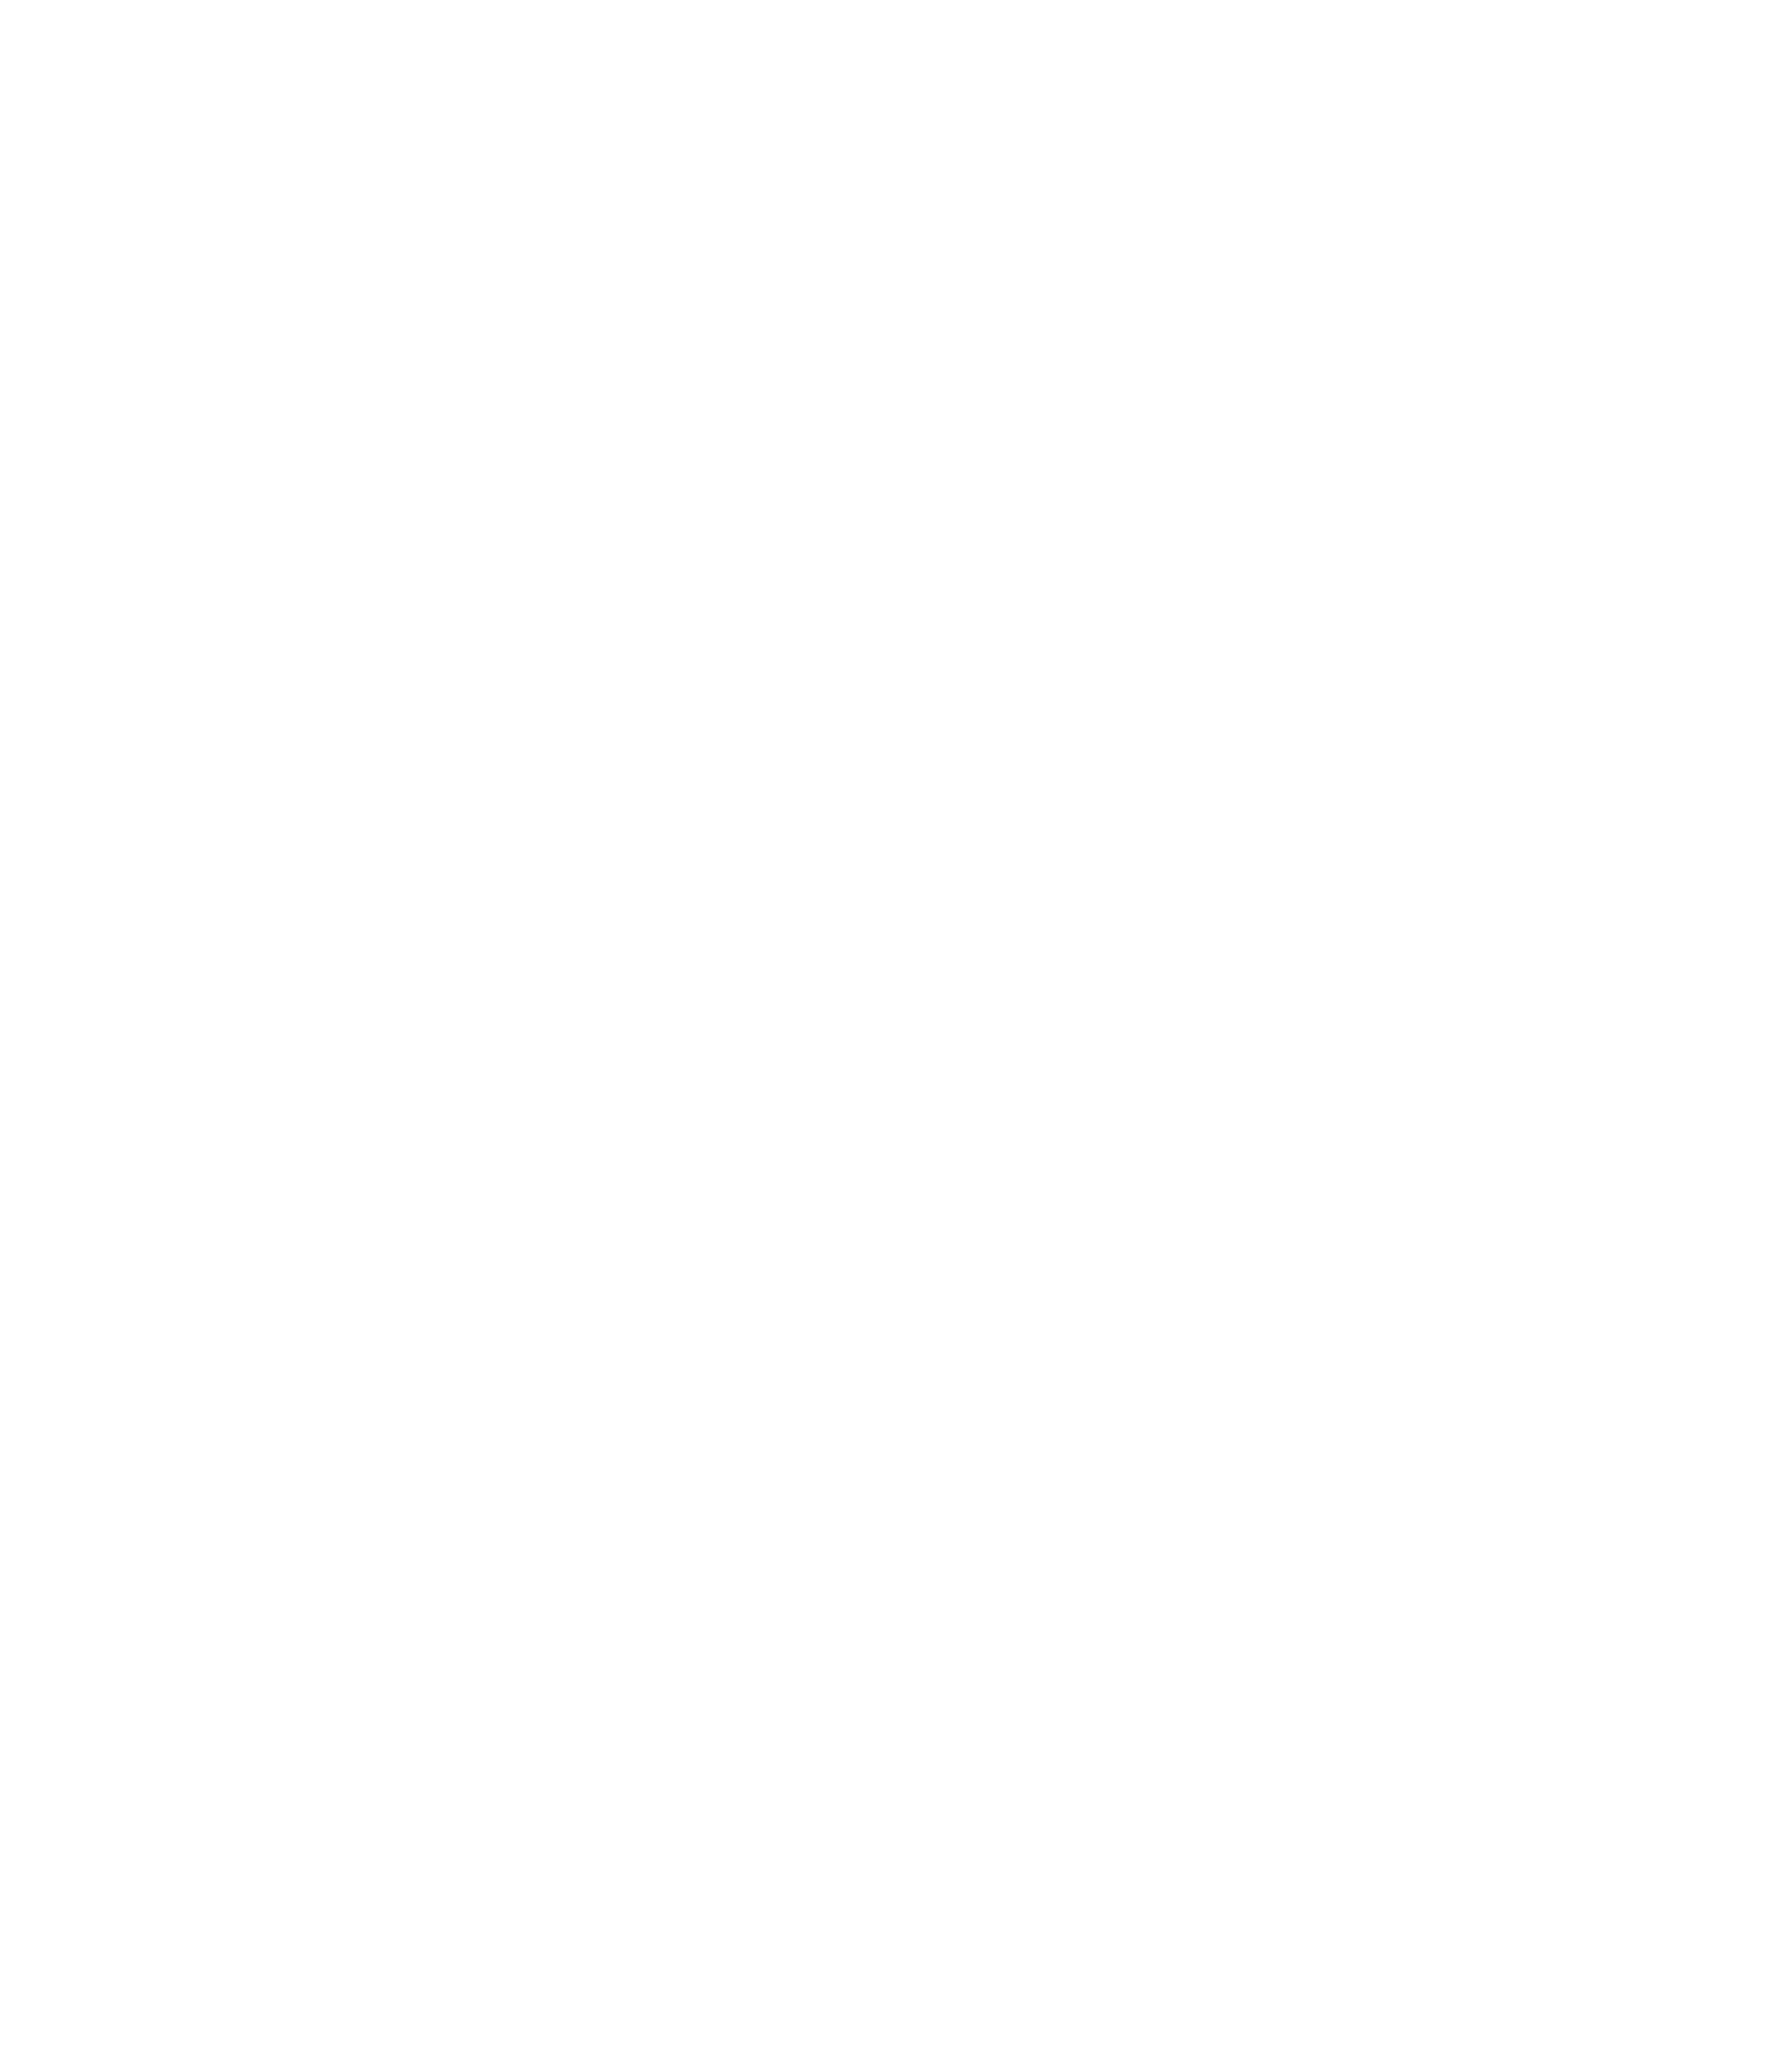 Greenxagon